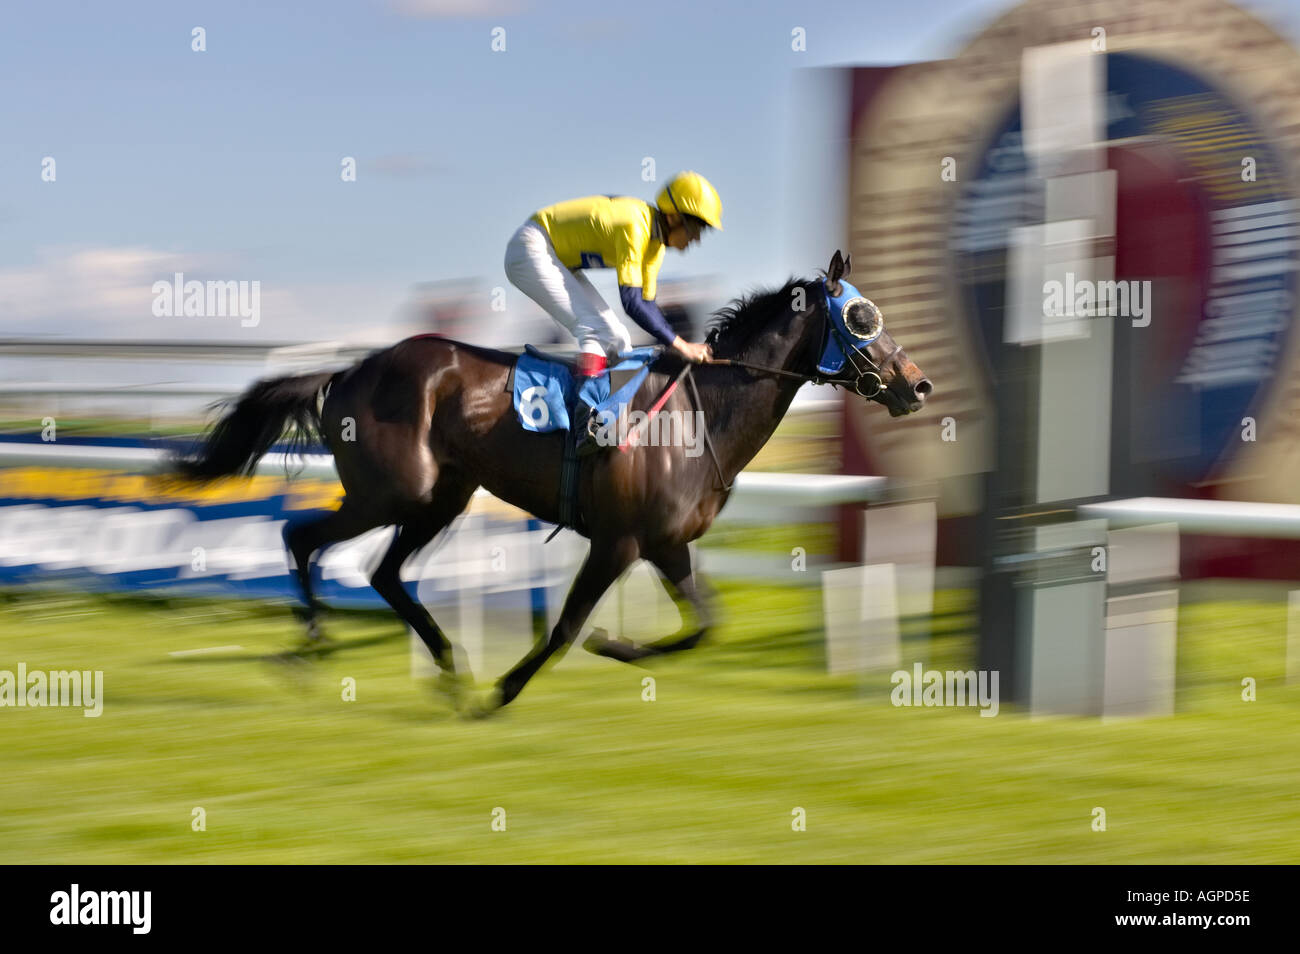 Winning a race - horse racing at the finishing / winning post - Stock Image